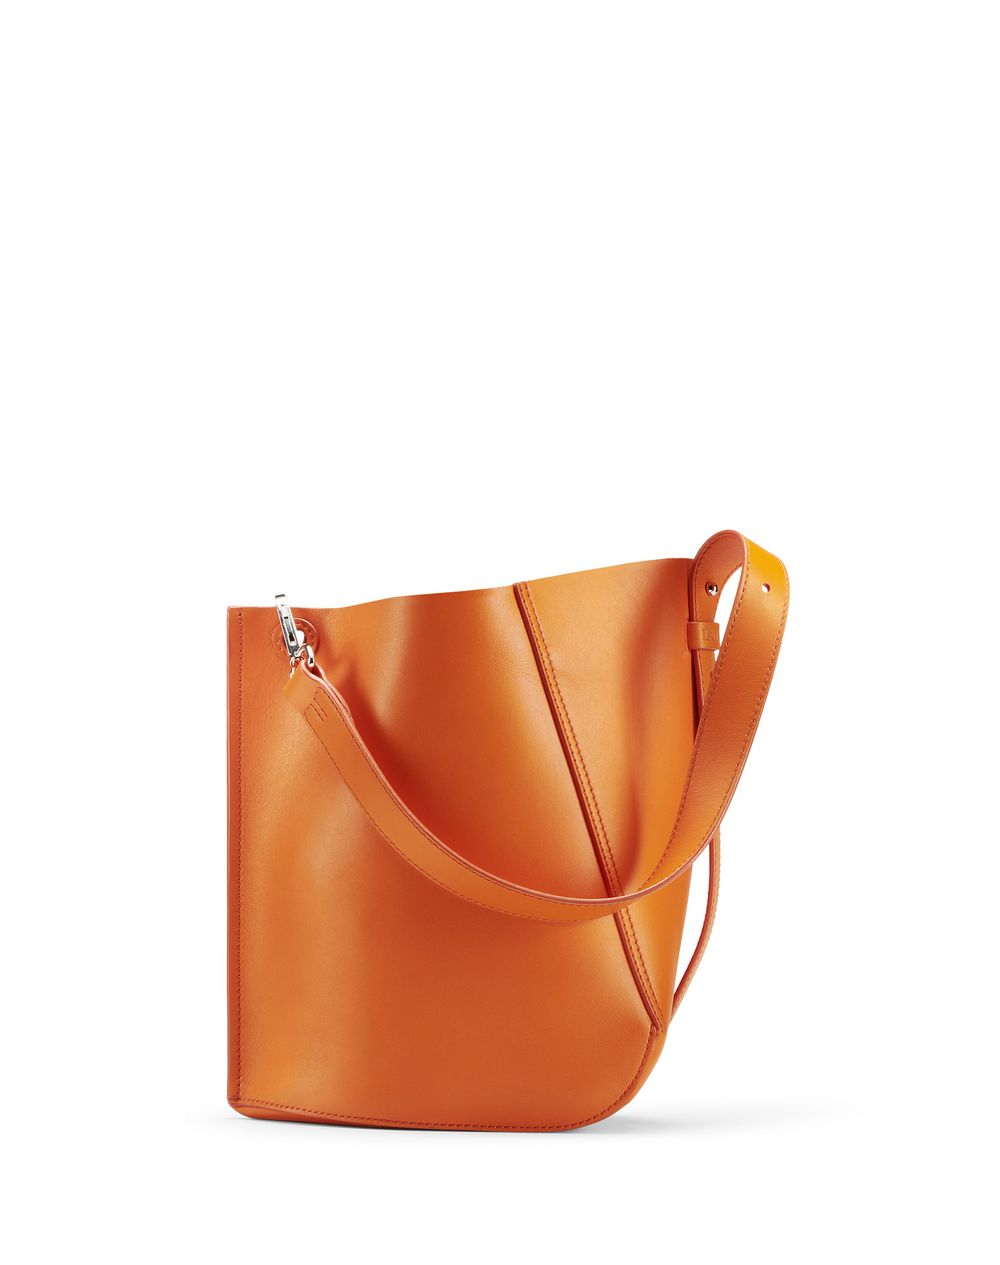 BORSA HOOK PICCOLA - Lanvin